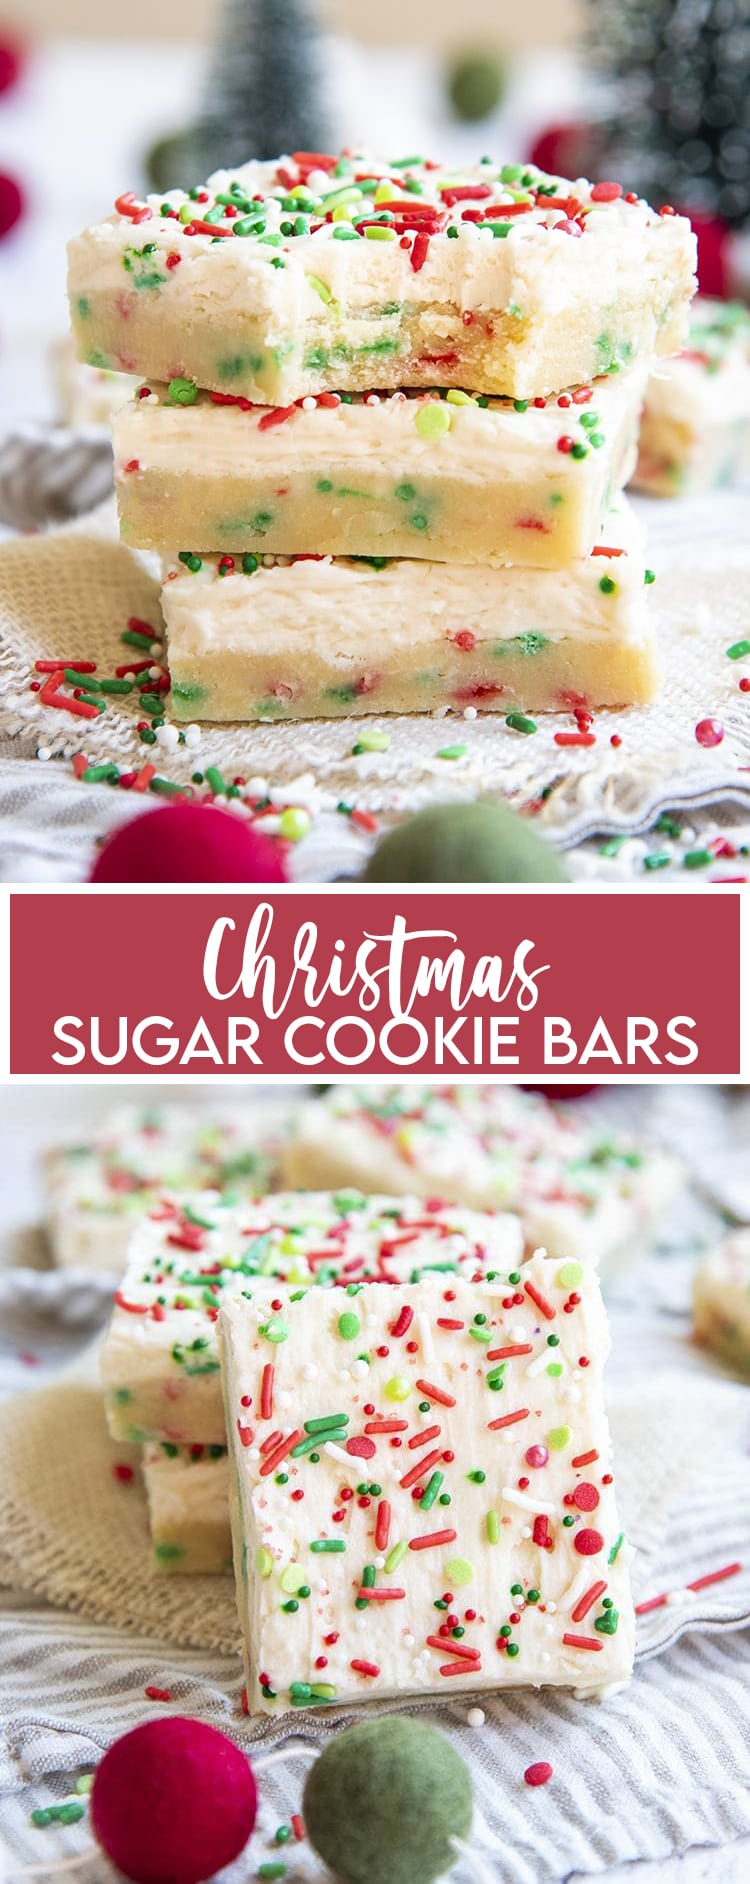 A stack of sugar cookie bars filled with red and green jimmie sprinkles, and topped with a white frosting, and more sprinkles, with a text overlay for pinterest. Then a photo of a cookie bar on it's side showing the top covered in Christmas sprinkles.